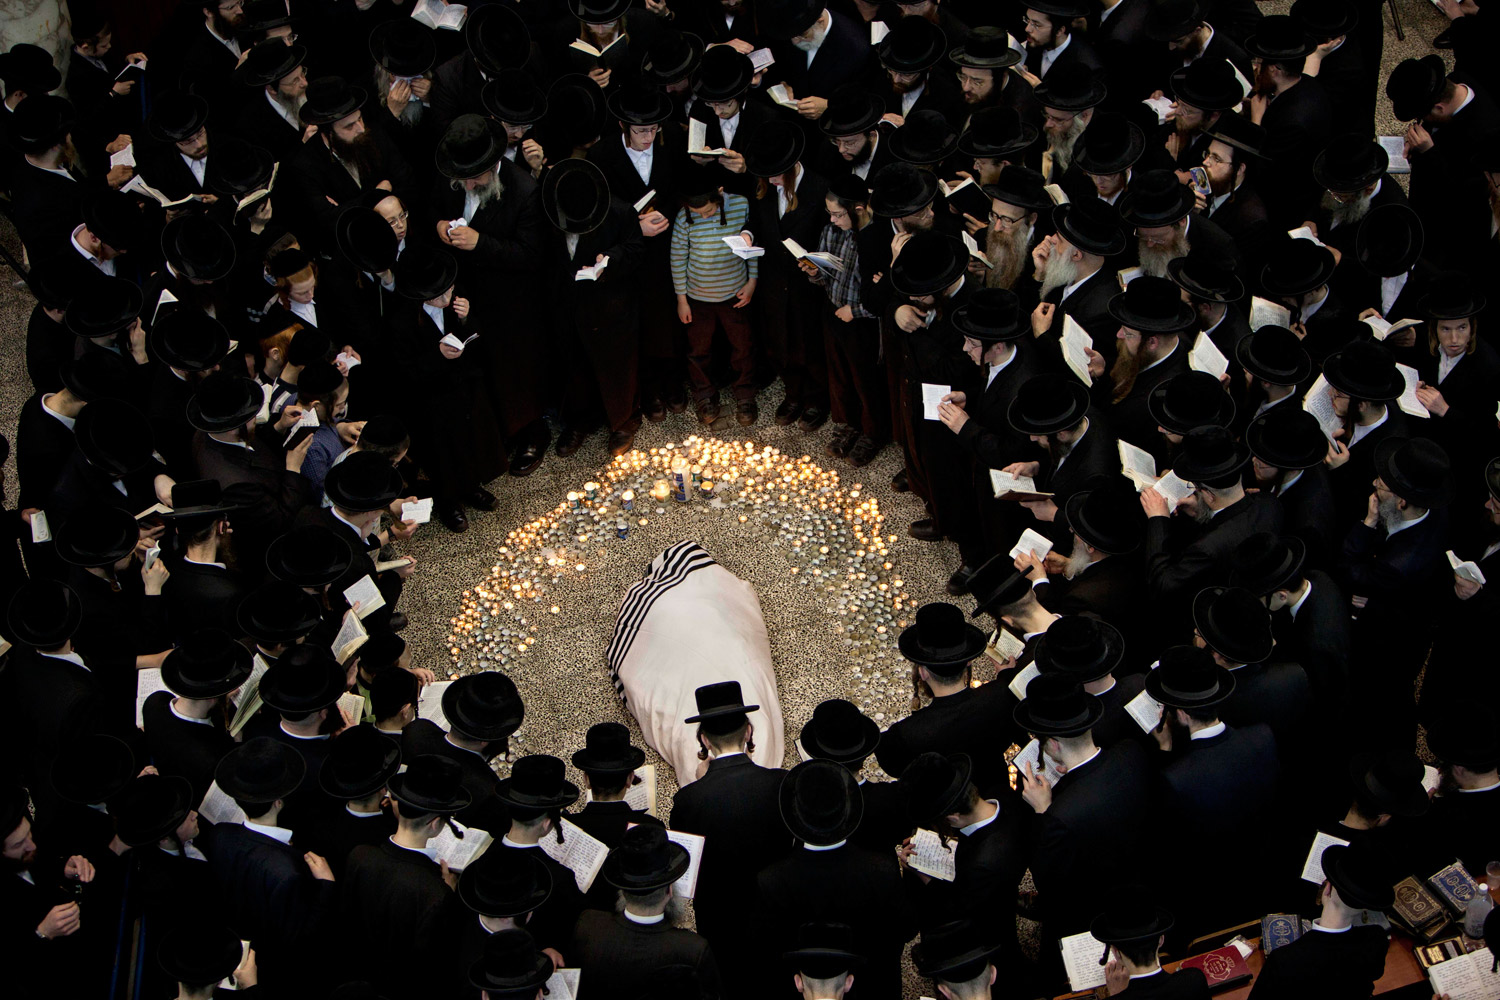 March 14, 2012. Ultra-Orthodox Jews gather around the body of Rabbi Moshe Yehoshua Hager, leader of the~Hassidic sect Vizhnitz in Israel, at the Vizhnitz Synagogue during his funeral procession in Bnei Brak, Israel.